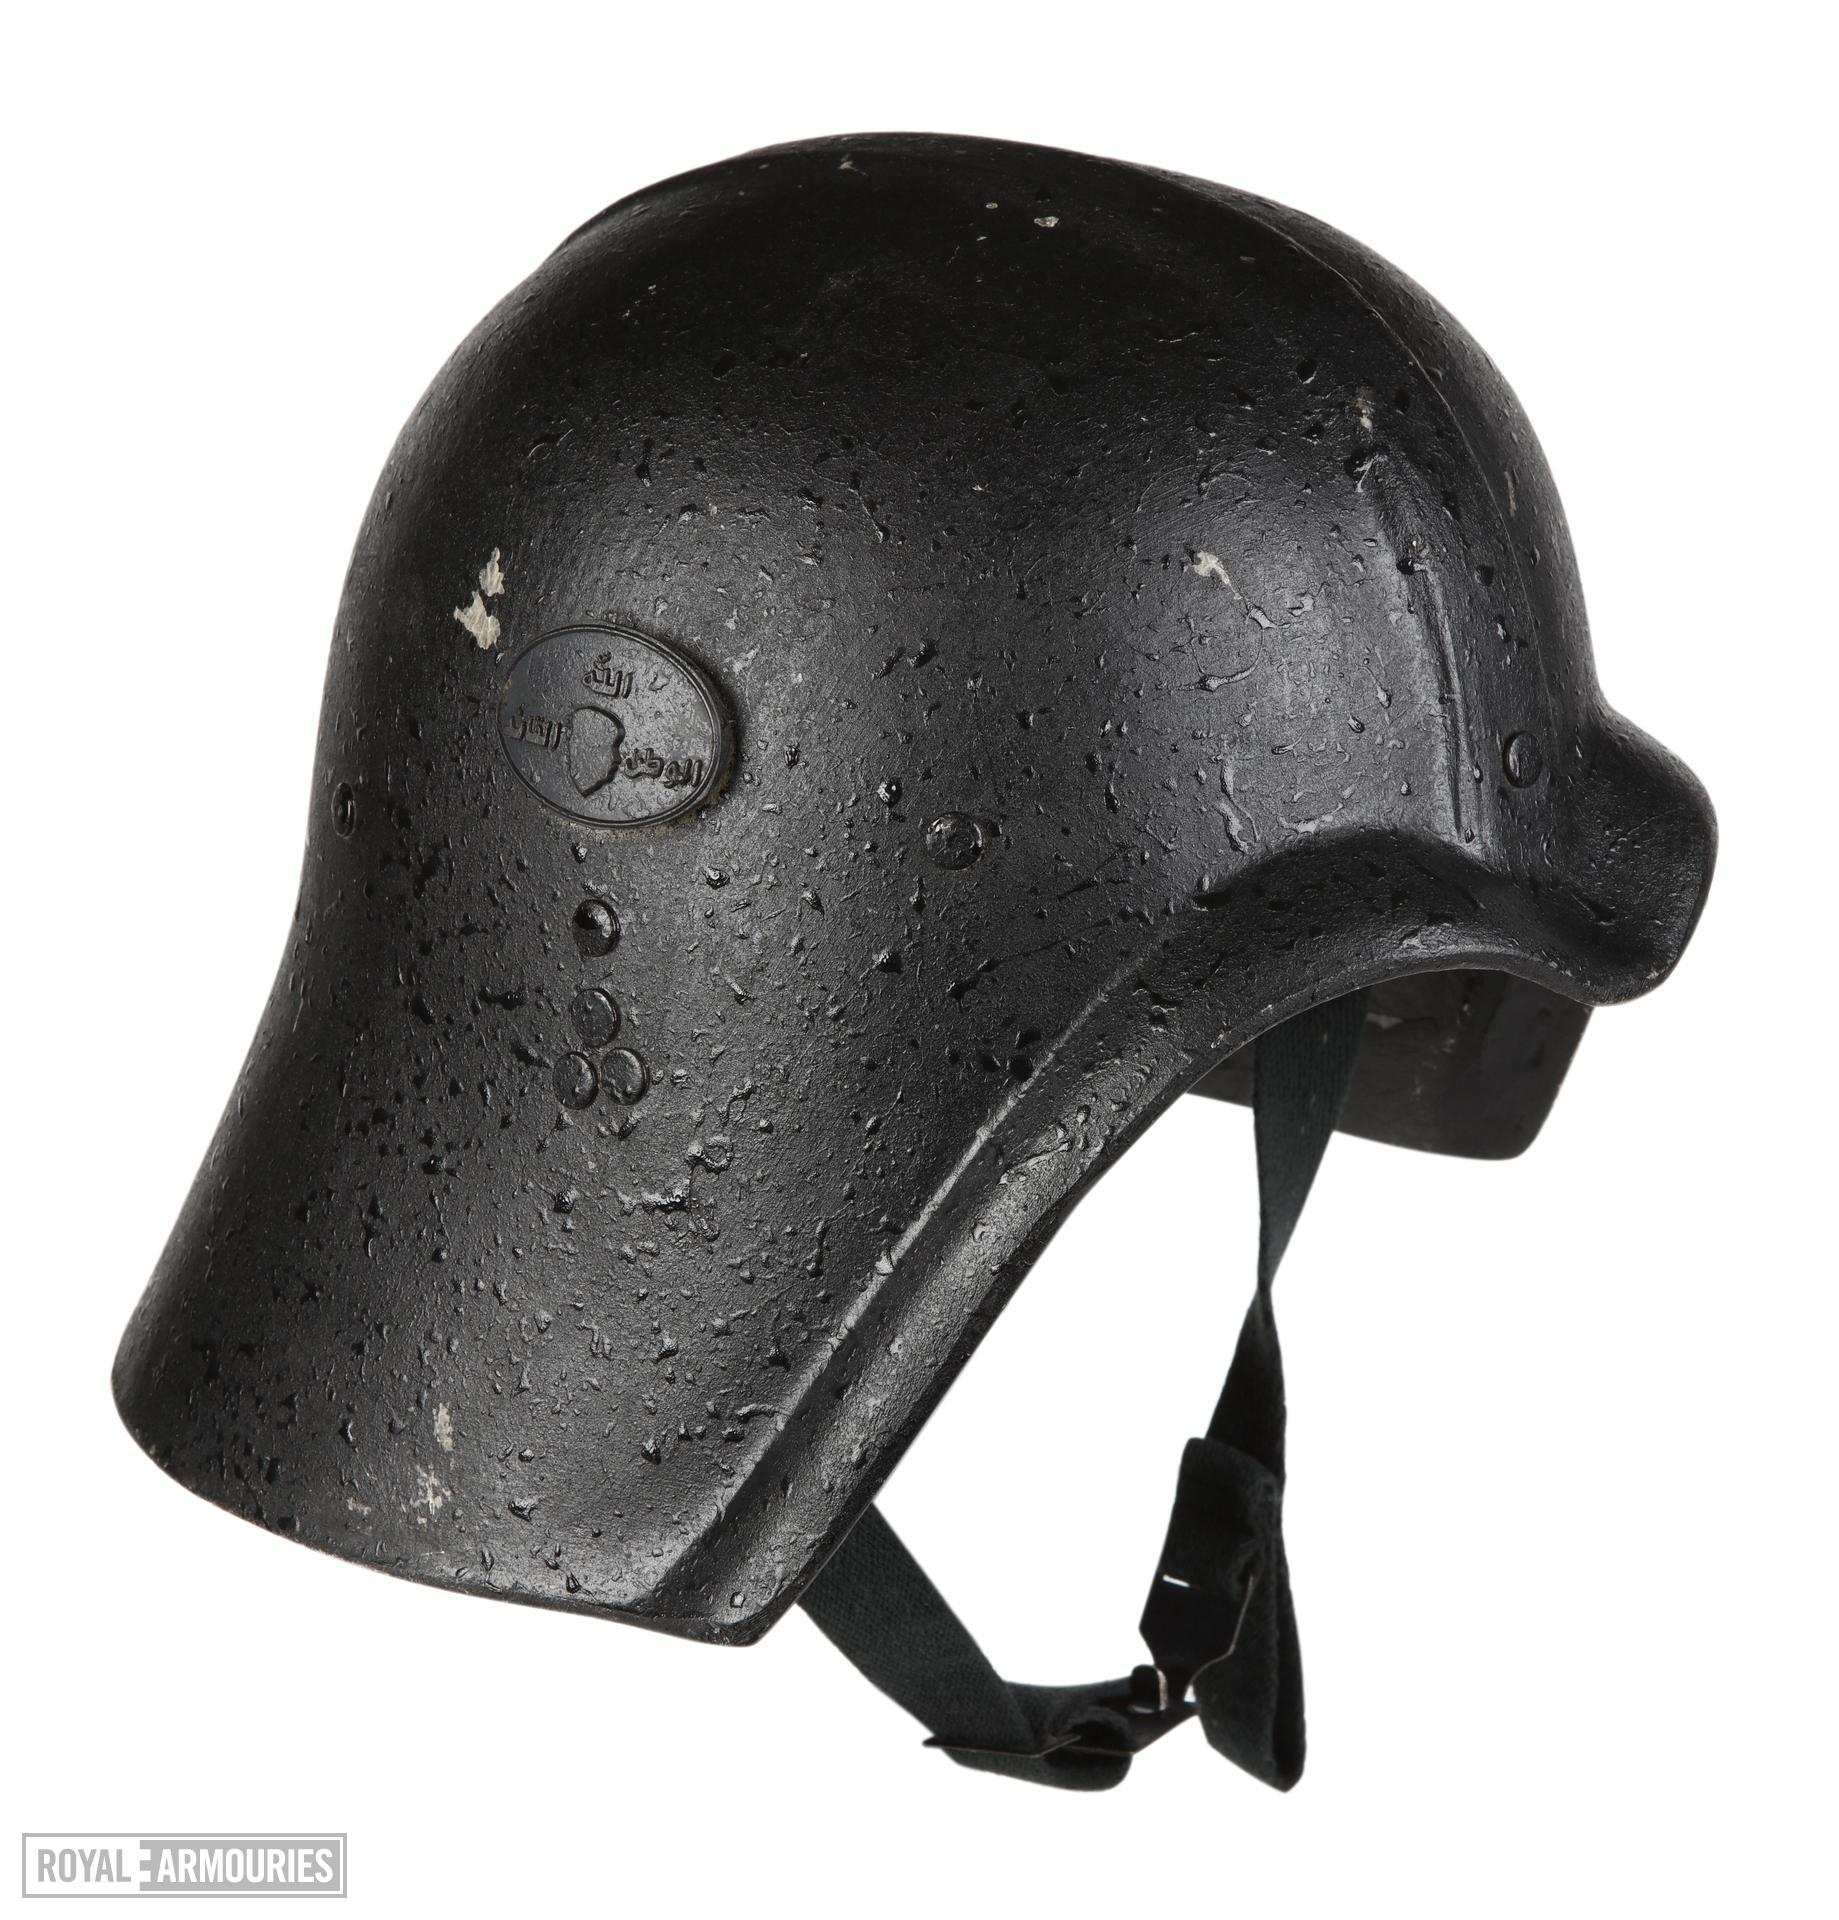 Right side view of helmet for Fedayeen Saddam, Iraq, about 1995 (IV.2059)